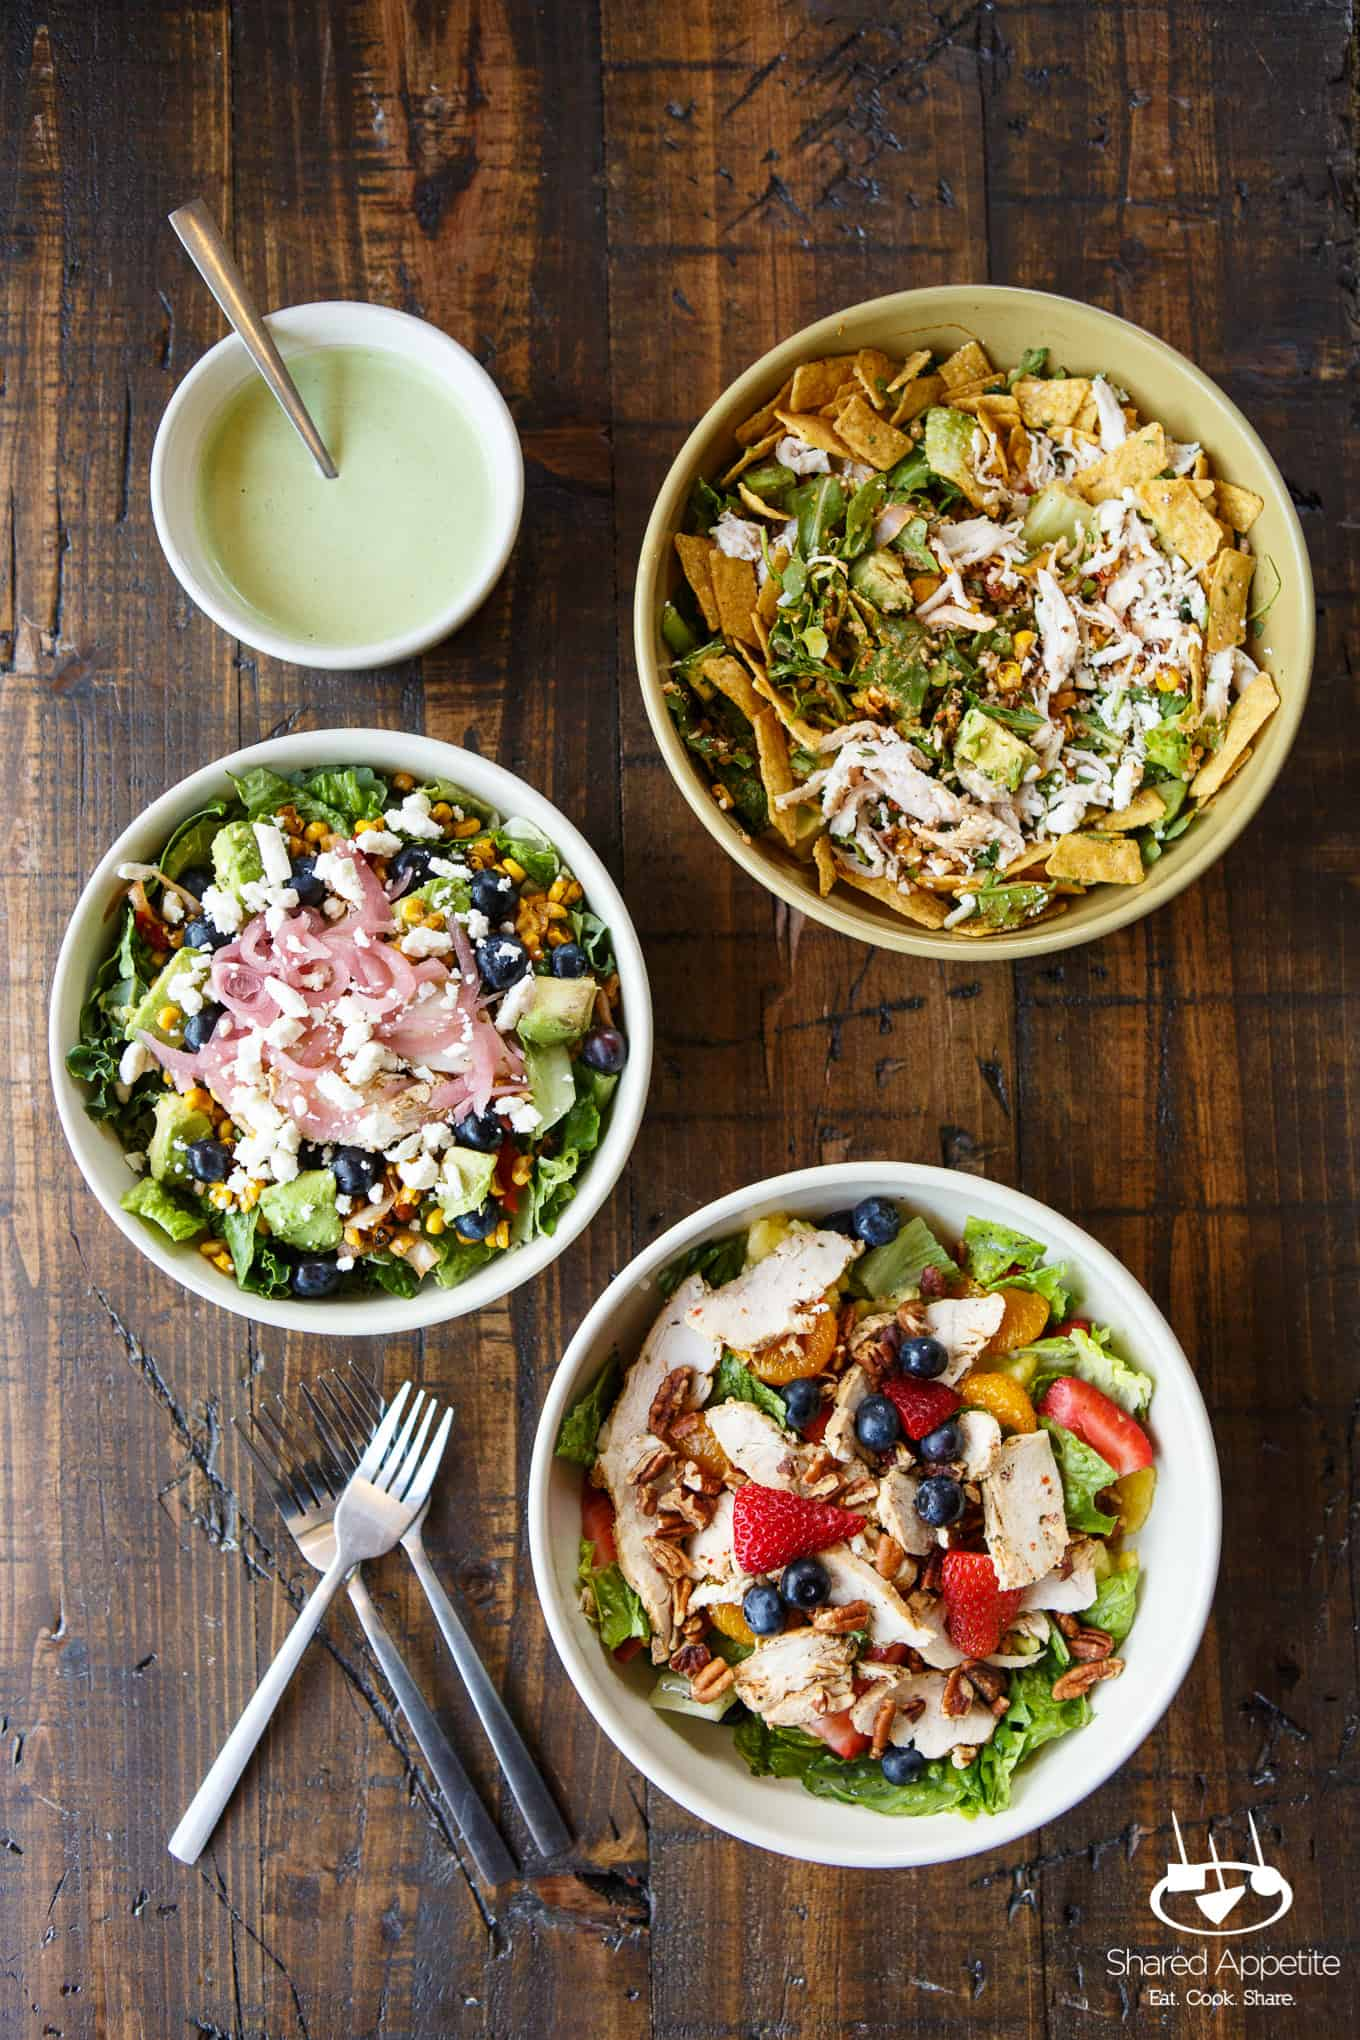 Create Your Own Salad at Panera - Shared Appetite